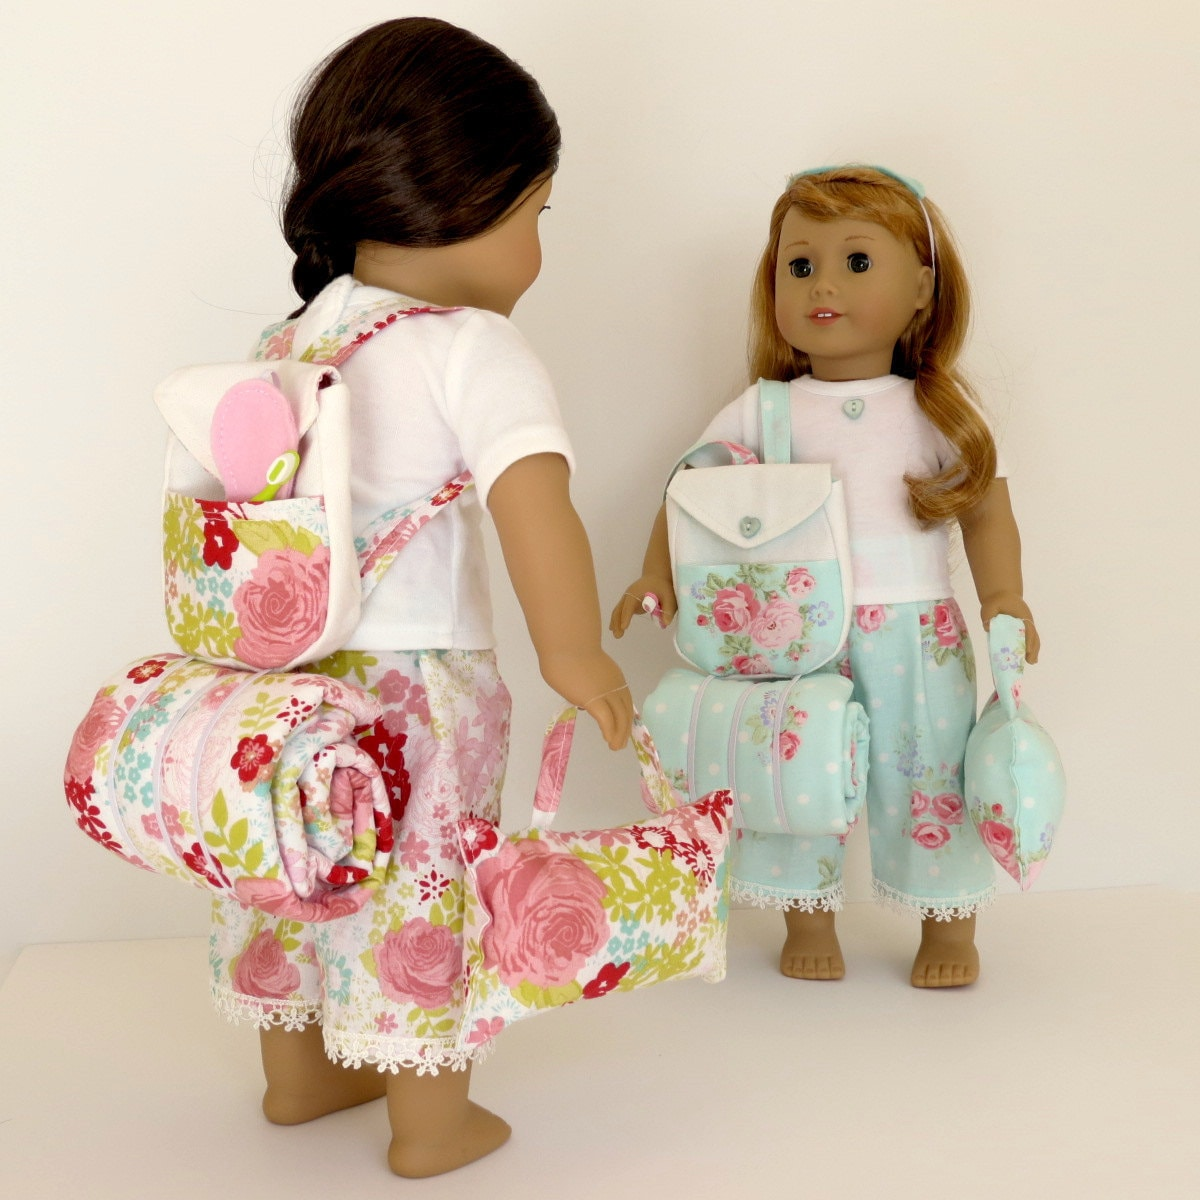 Doll Sleepover Set Handcrafted For 18 Inch Dolls Such As